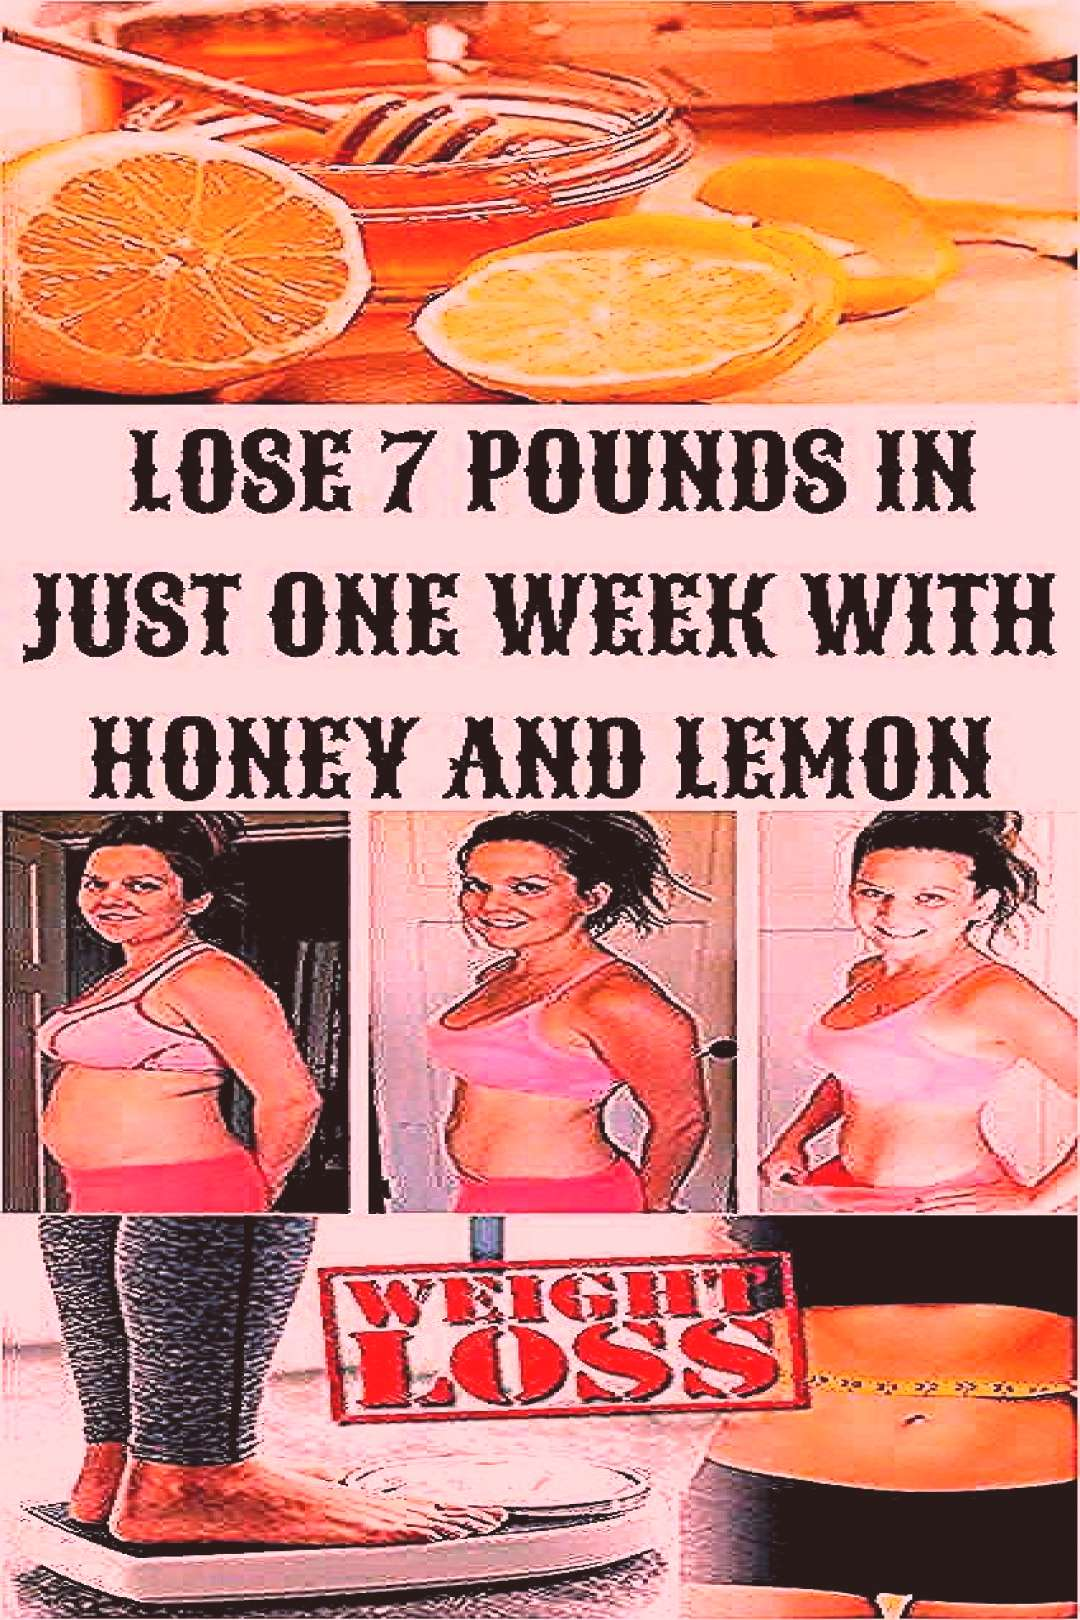 29+ New Ideas Diet Plans To Lose Weight For Women Fast Meals Comment - 29+ New Ideas Diet Plans To